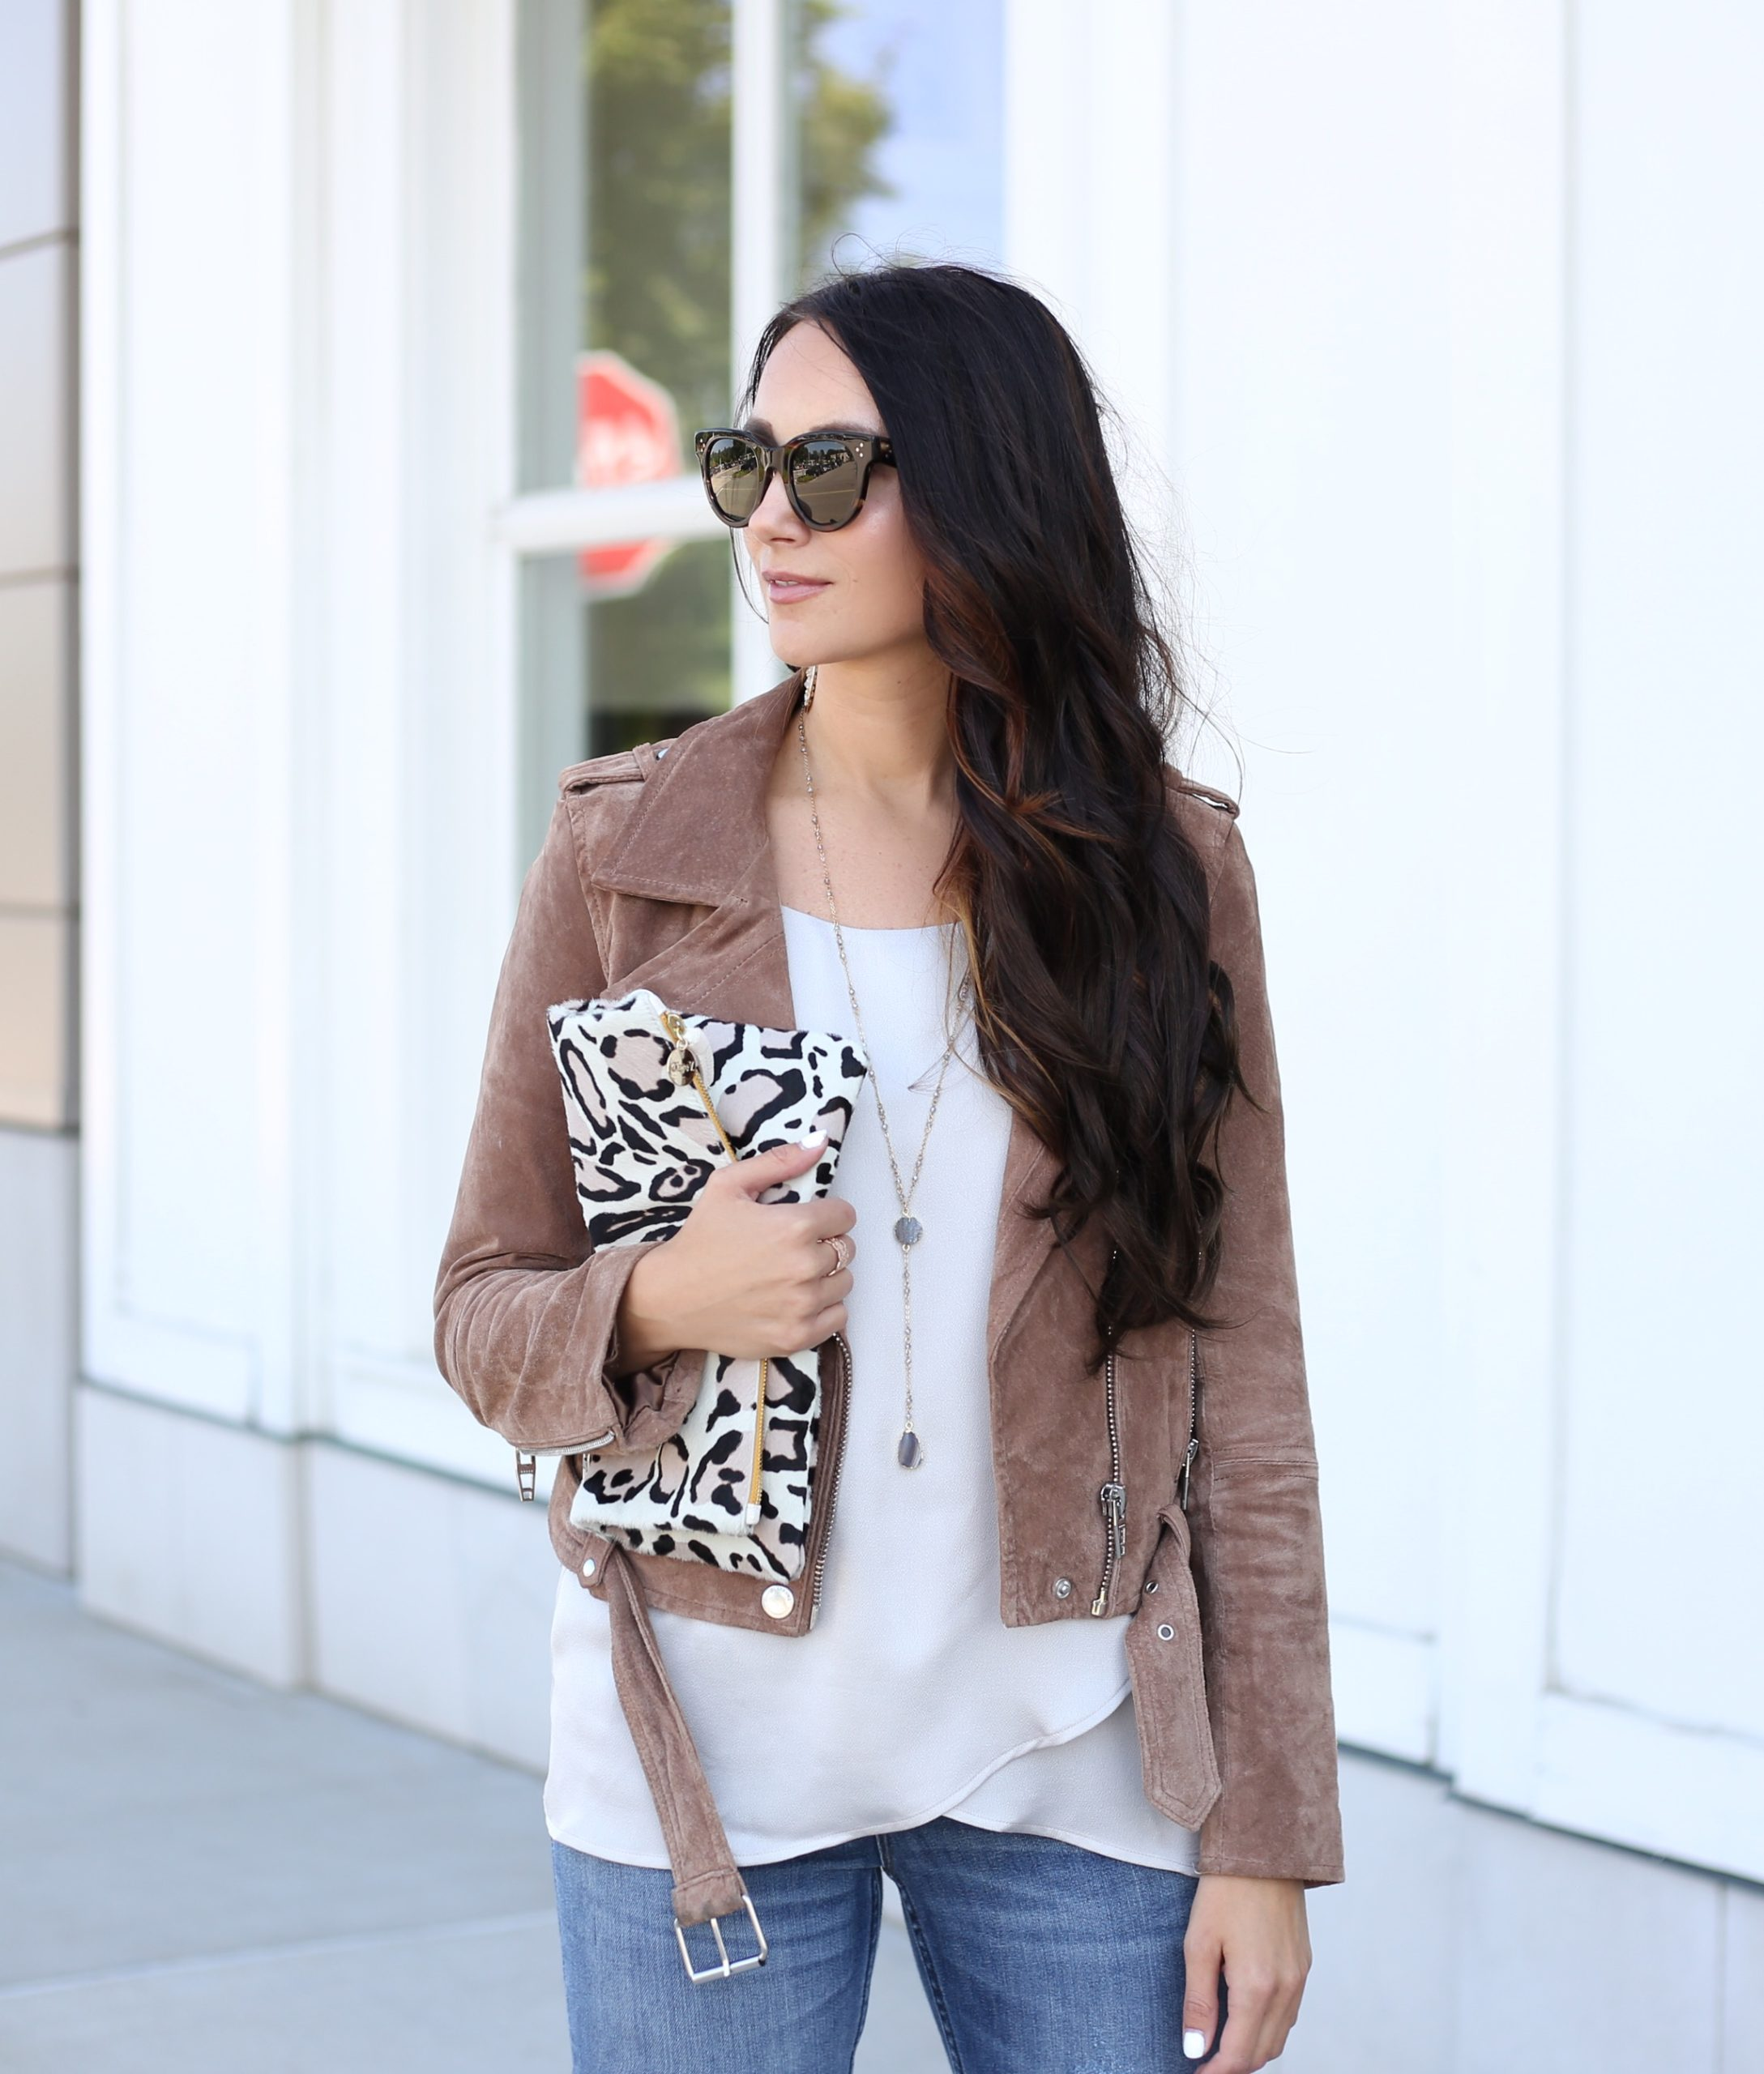 blogger Anna Monteiro of Blushing ROse STyle blog wearing free people saturday morning cardigan from nordstrom and steve madden carrson sandals from nordstrom in fall wardrobe update